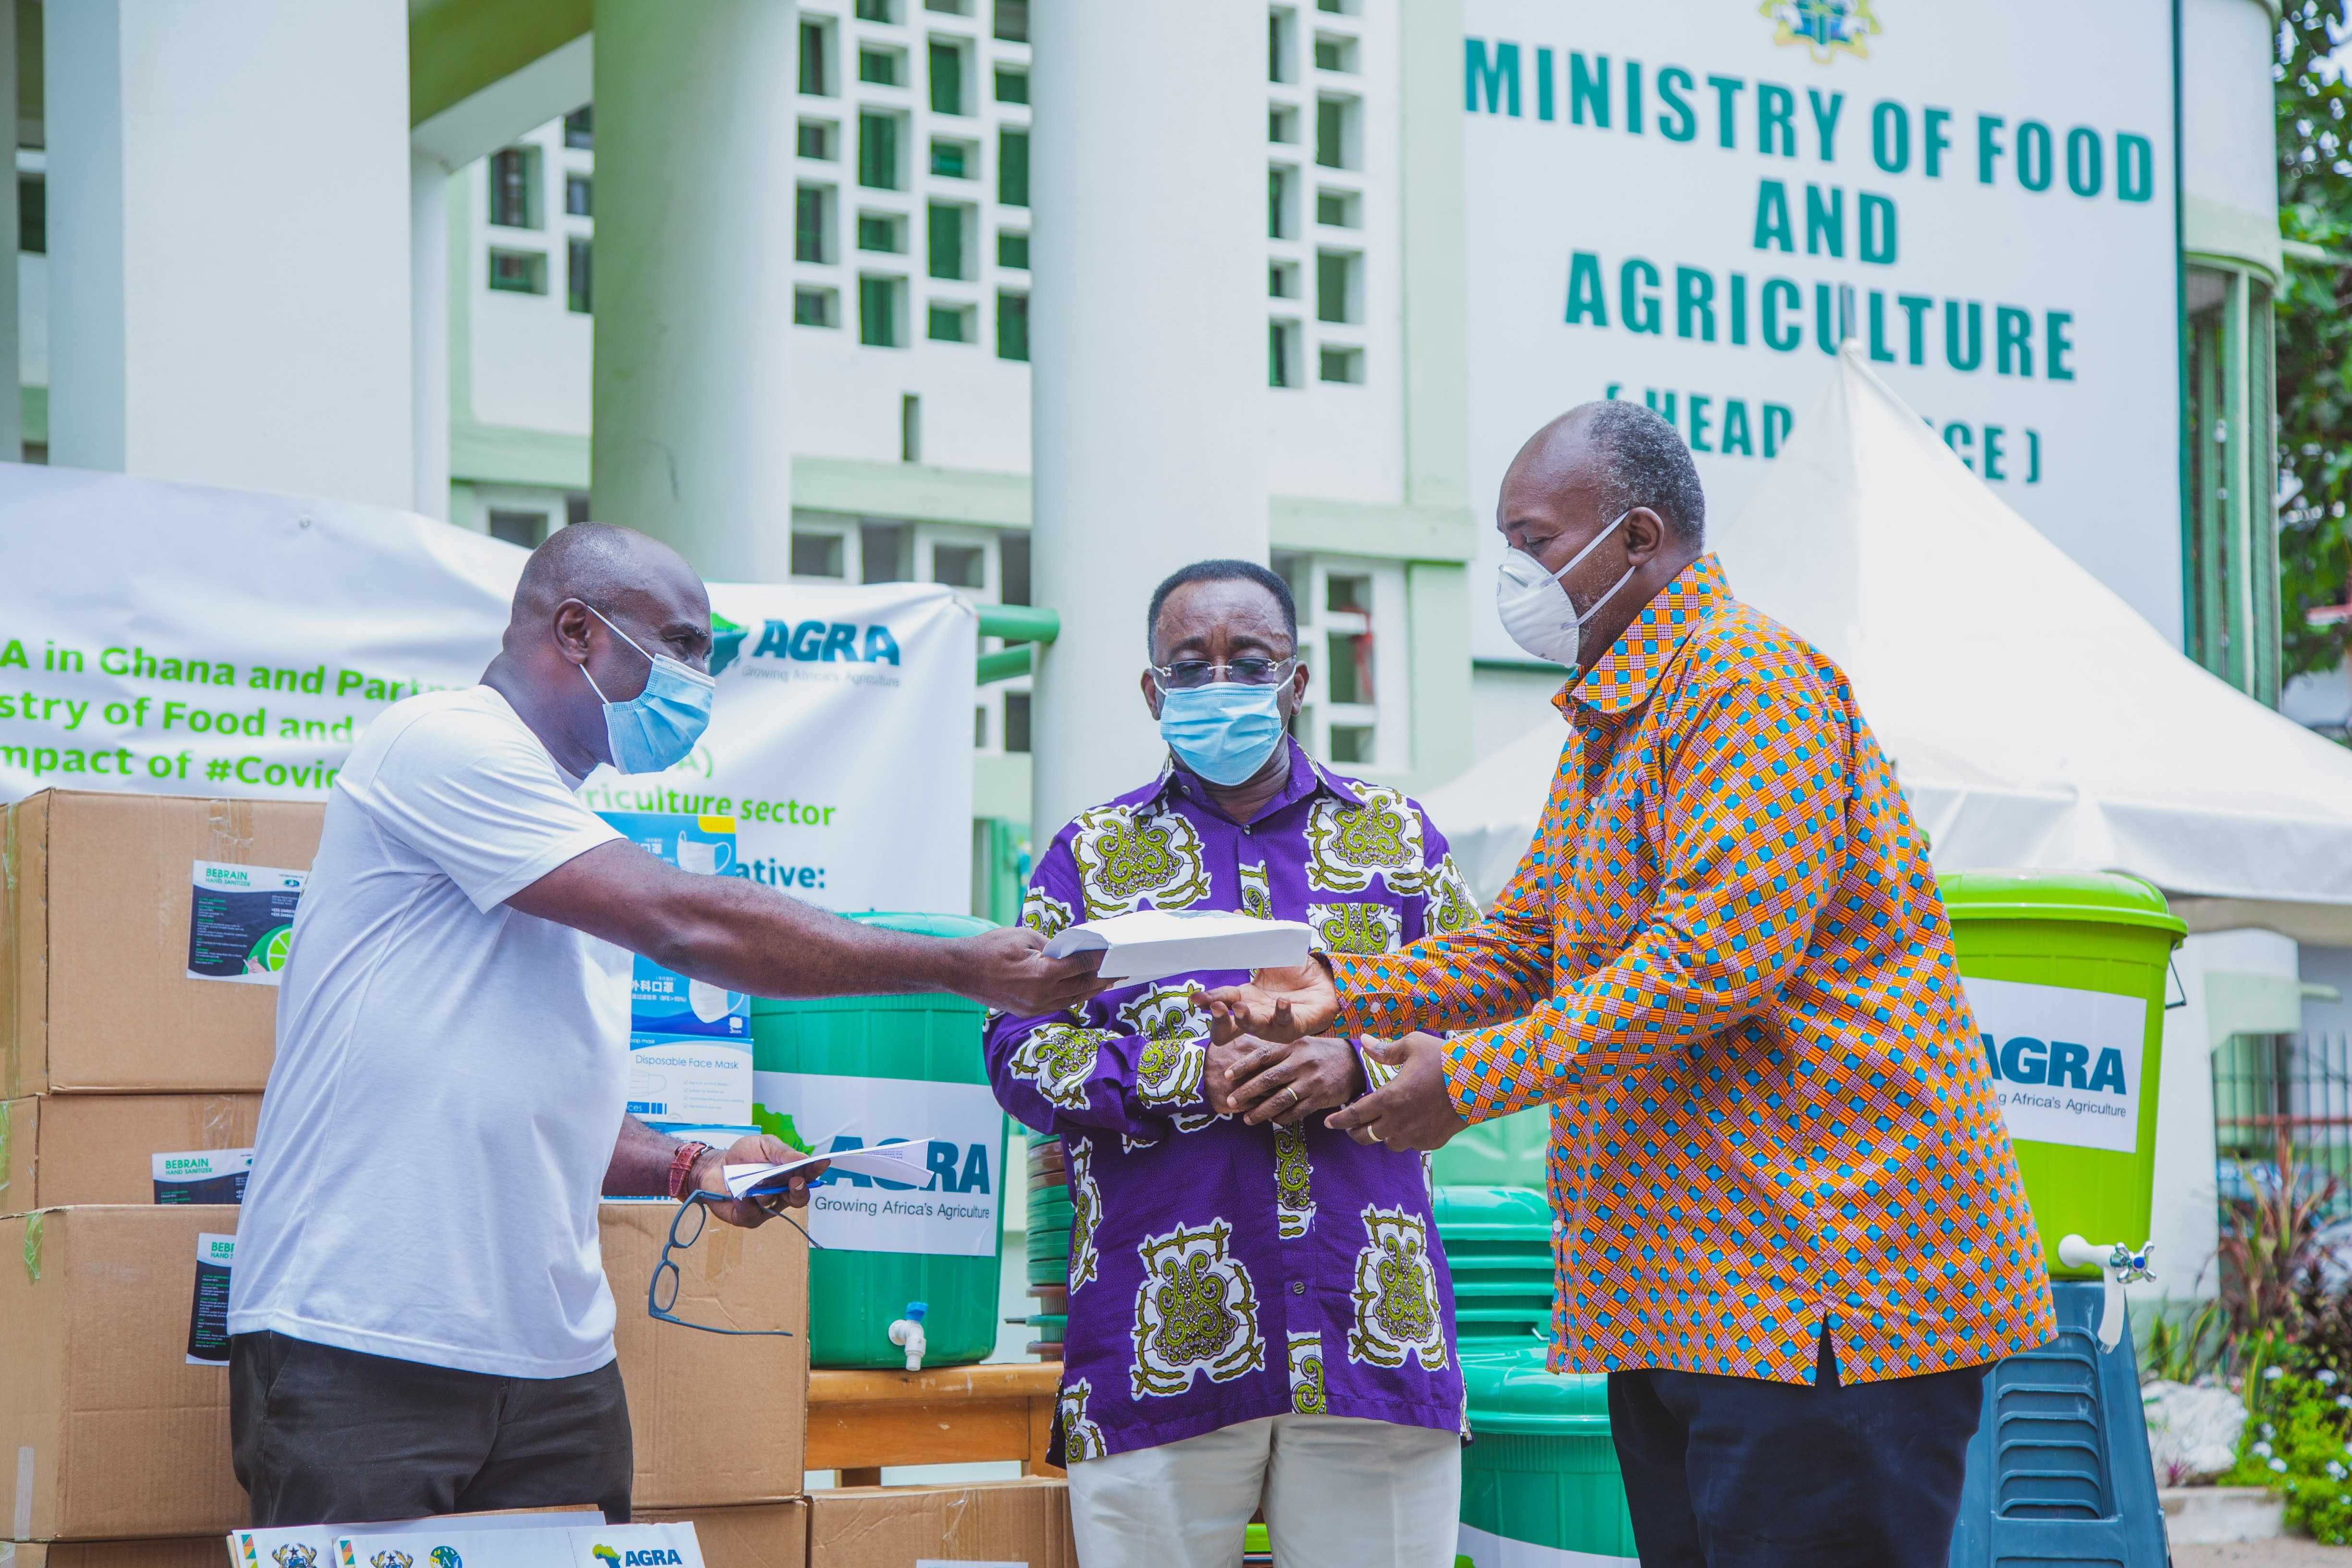 Mr Foster K. Boateng, West Africa Head of AGRA, making a presentation to Mr Patrick Robert Ankobiah, Chief Director at MOFA, while Dr Owusu Afriyie Akoto, Minister of Food and Agriculture looks on